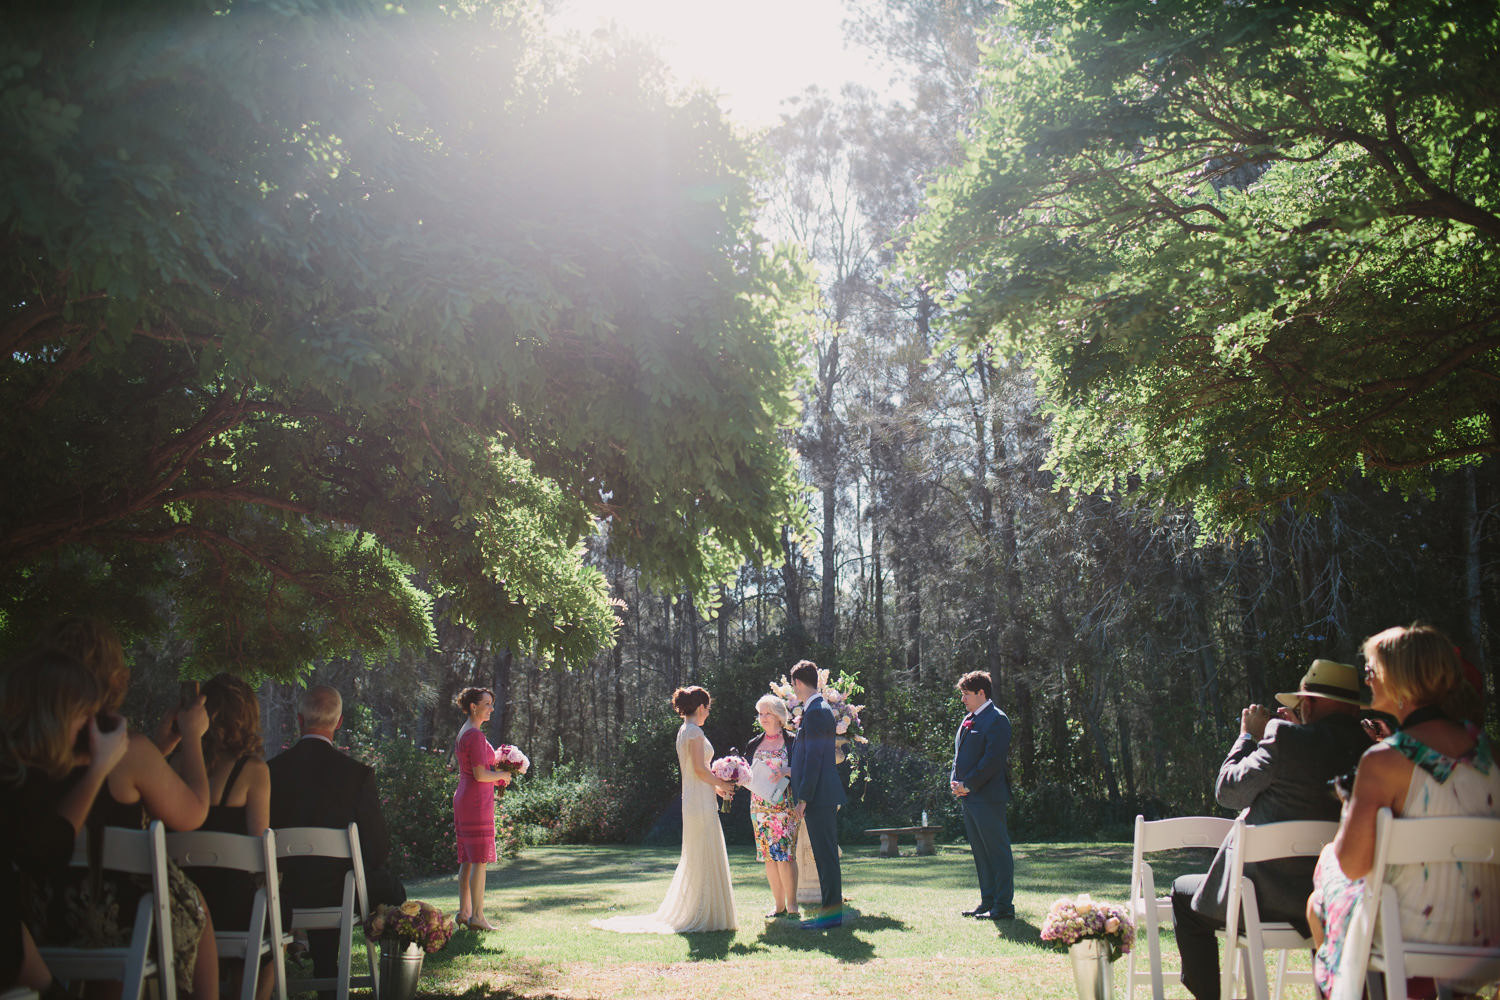 Exchanging wedding vows in the Hunter Valley